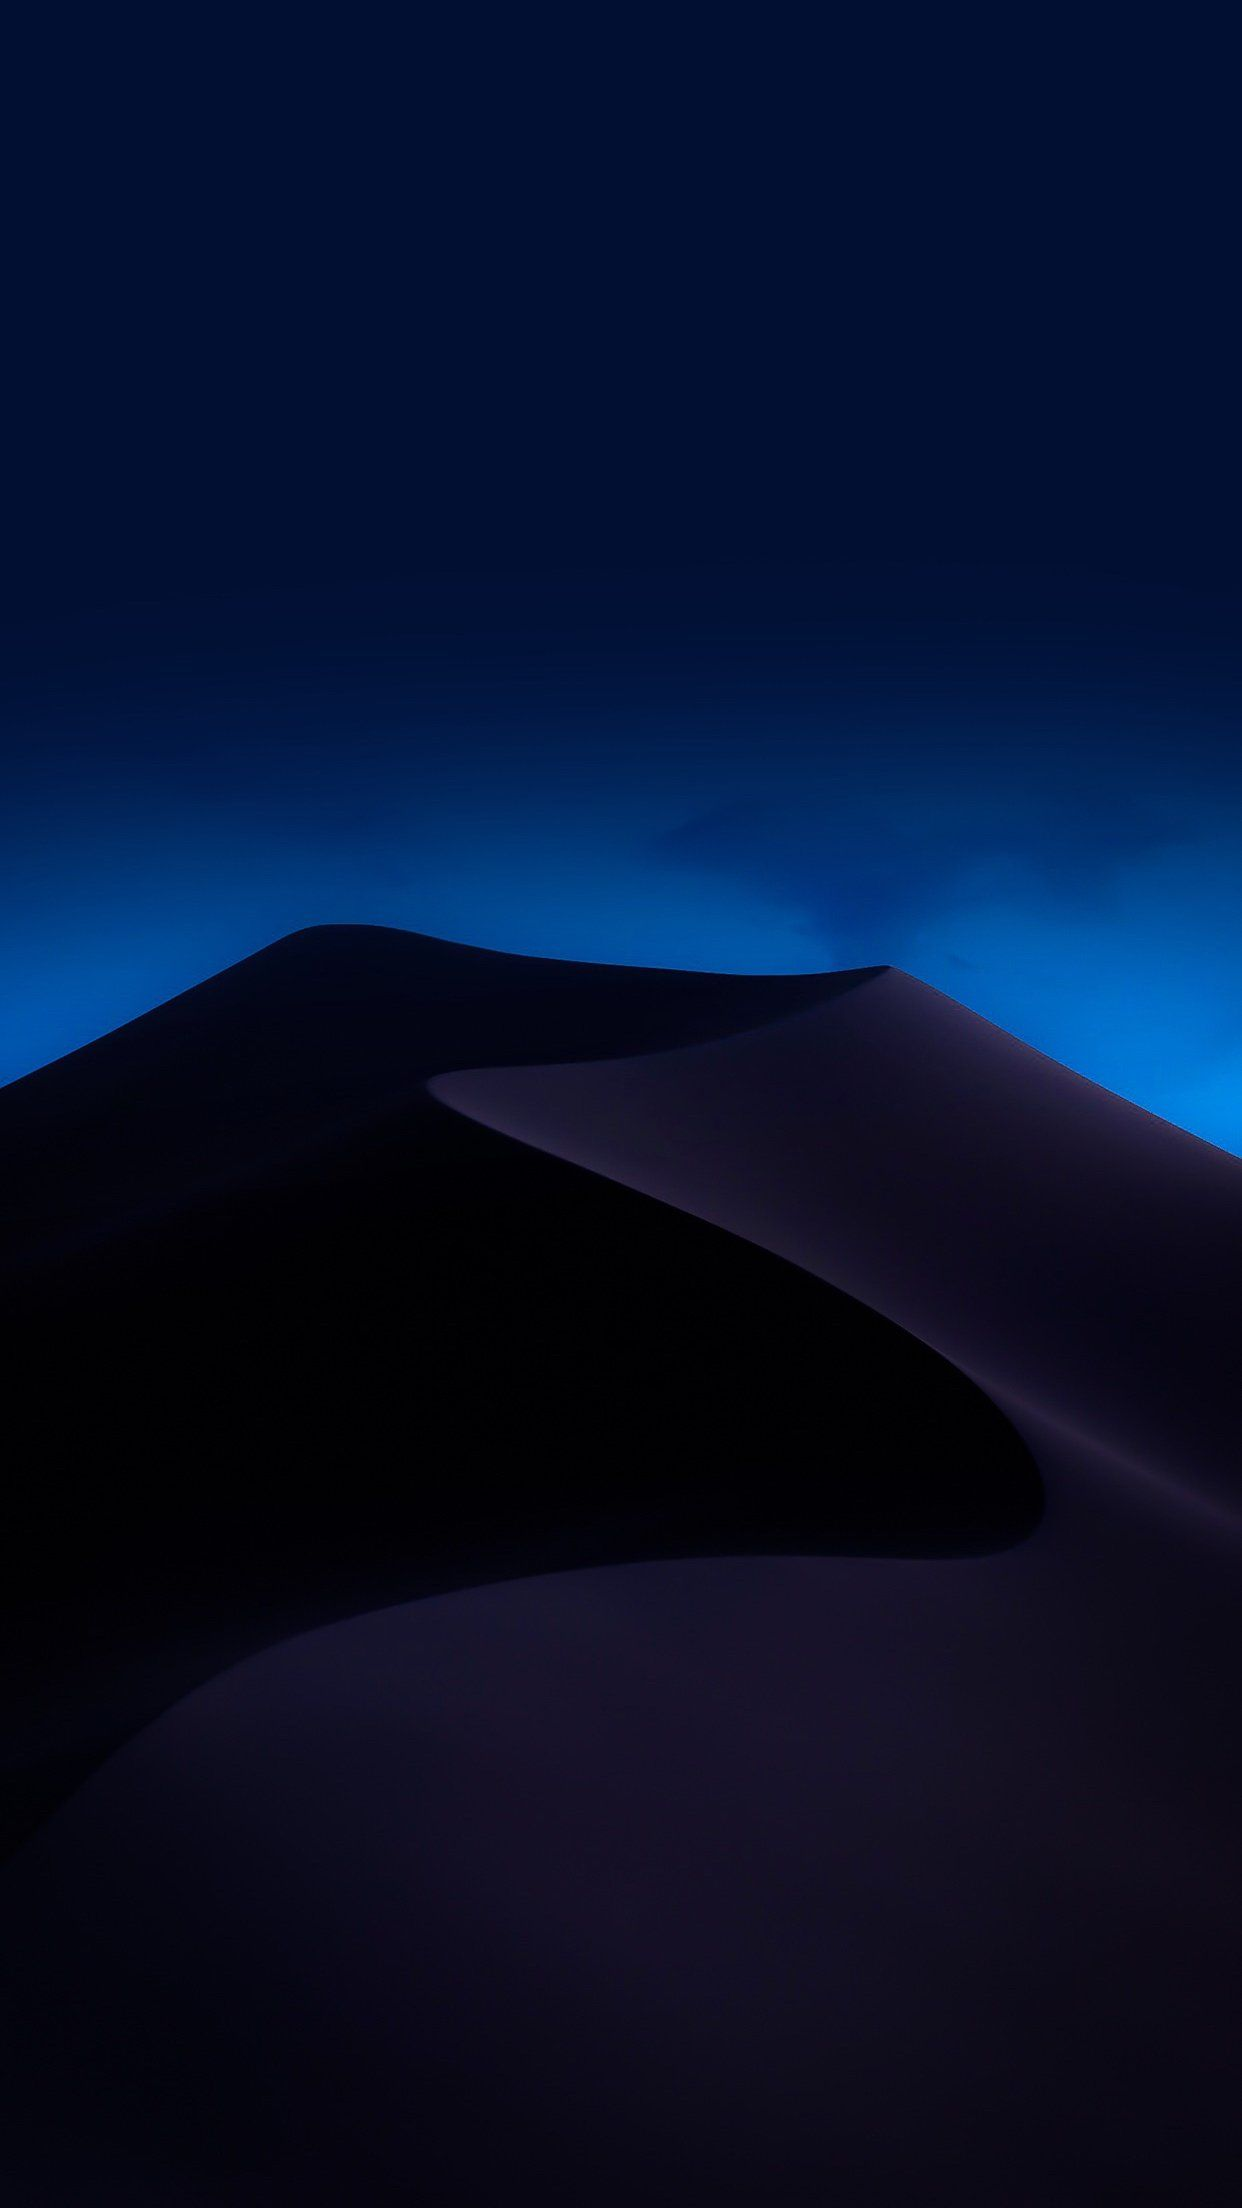 Macos Mojave Credit Ar7 Iphone Wallpapers Iphonewallpaper4k Iphonewal Iphone Homescreen Wallpaper Iphone Wallpaper Hd Original Iphone Wallpaper Pinterest